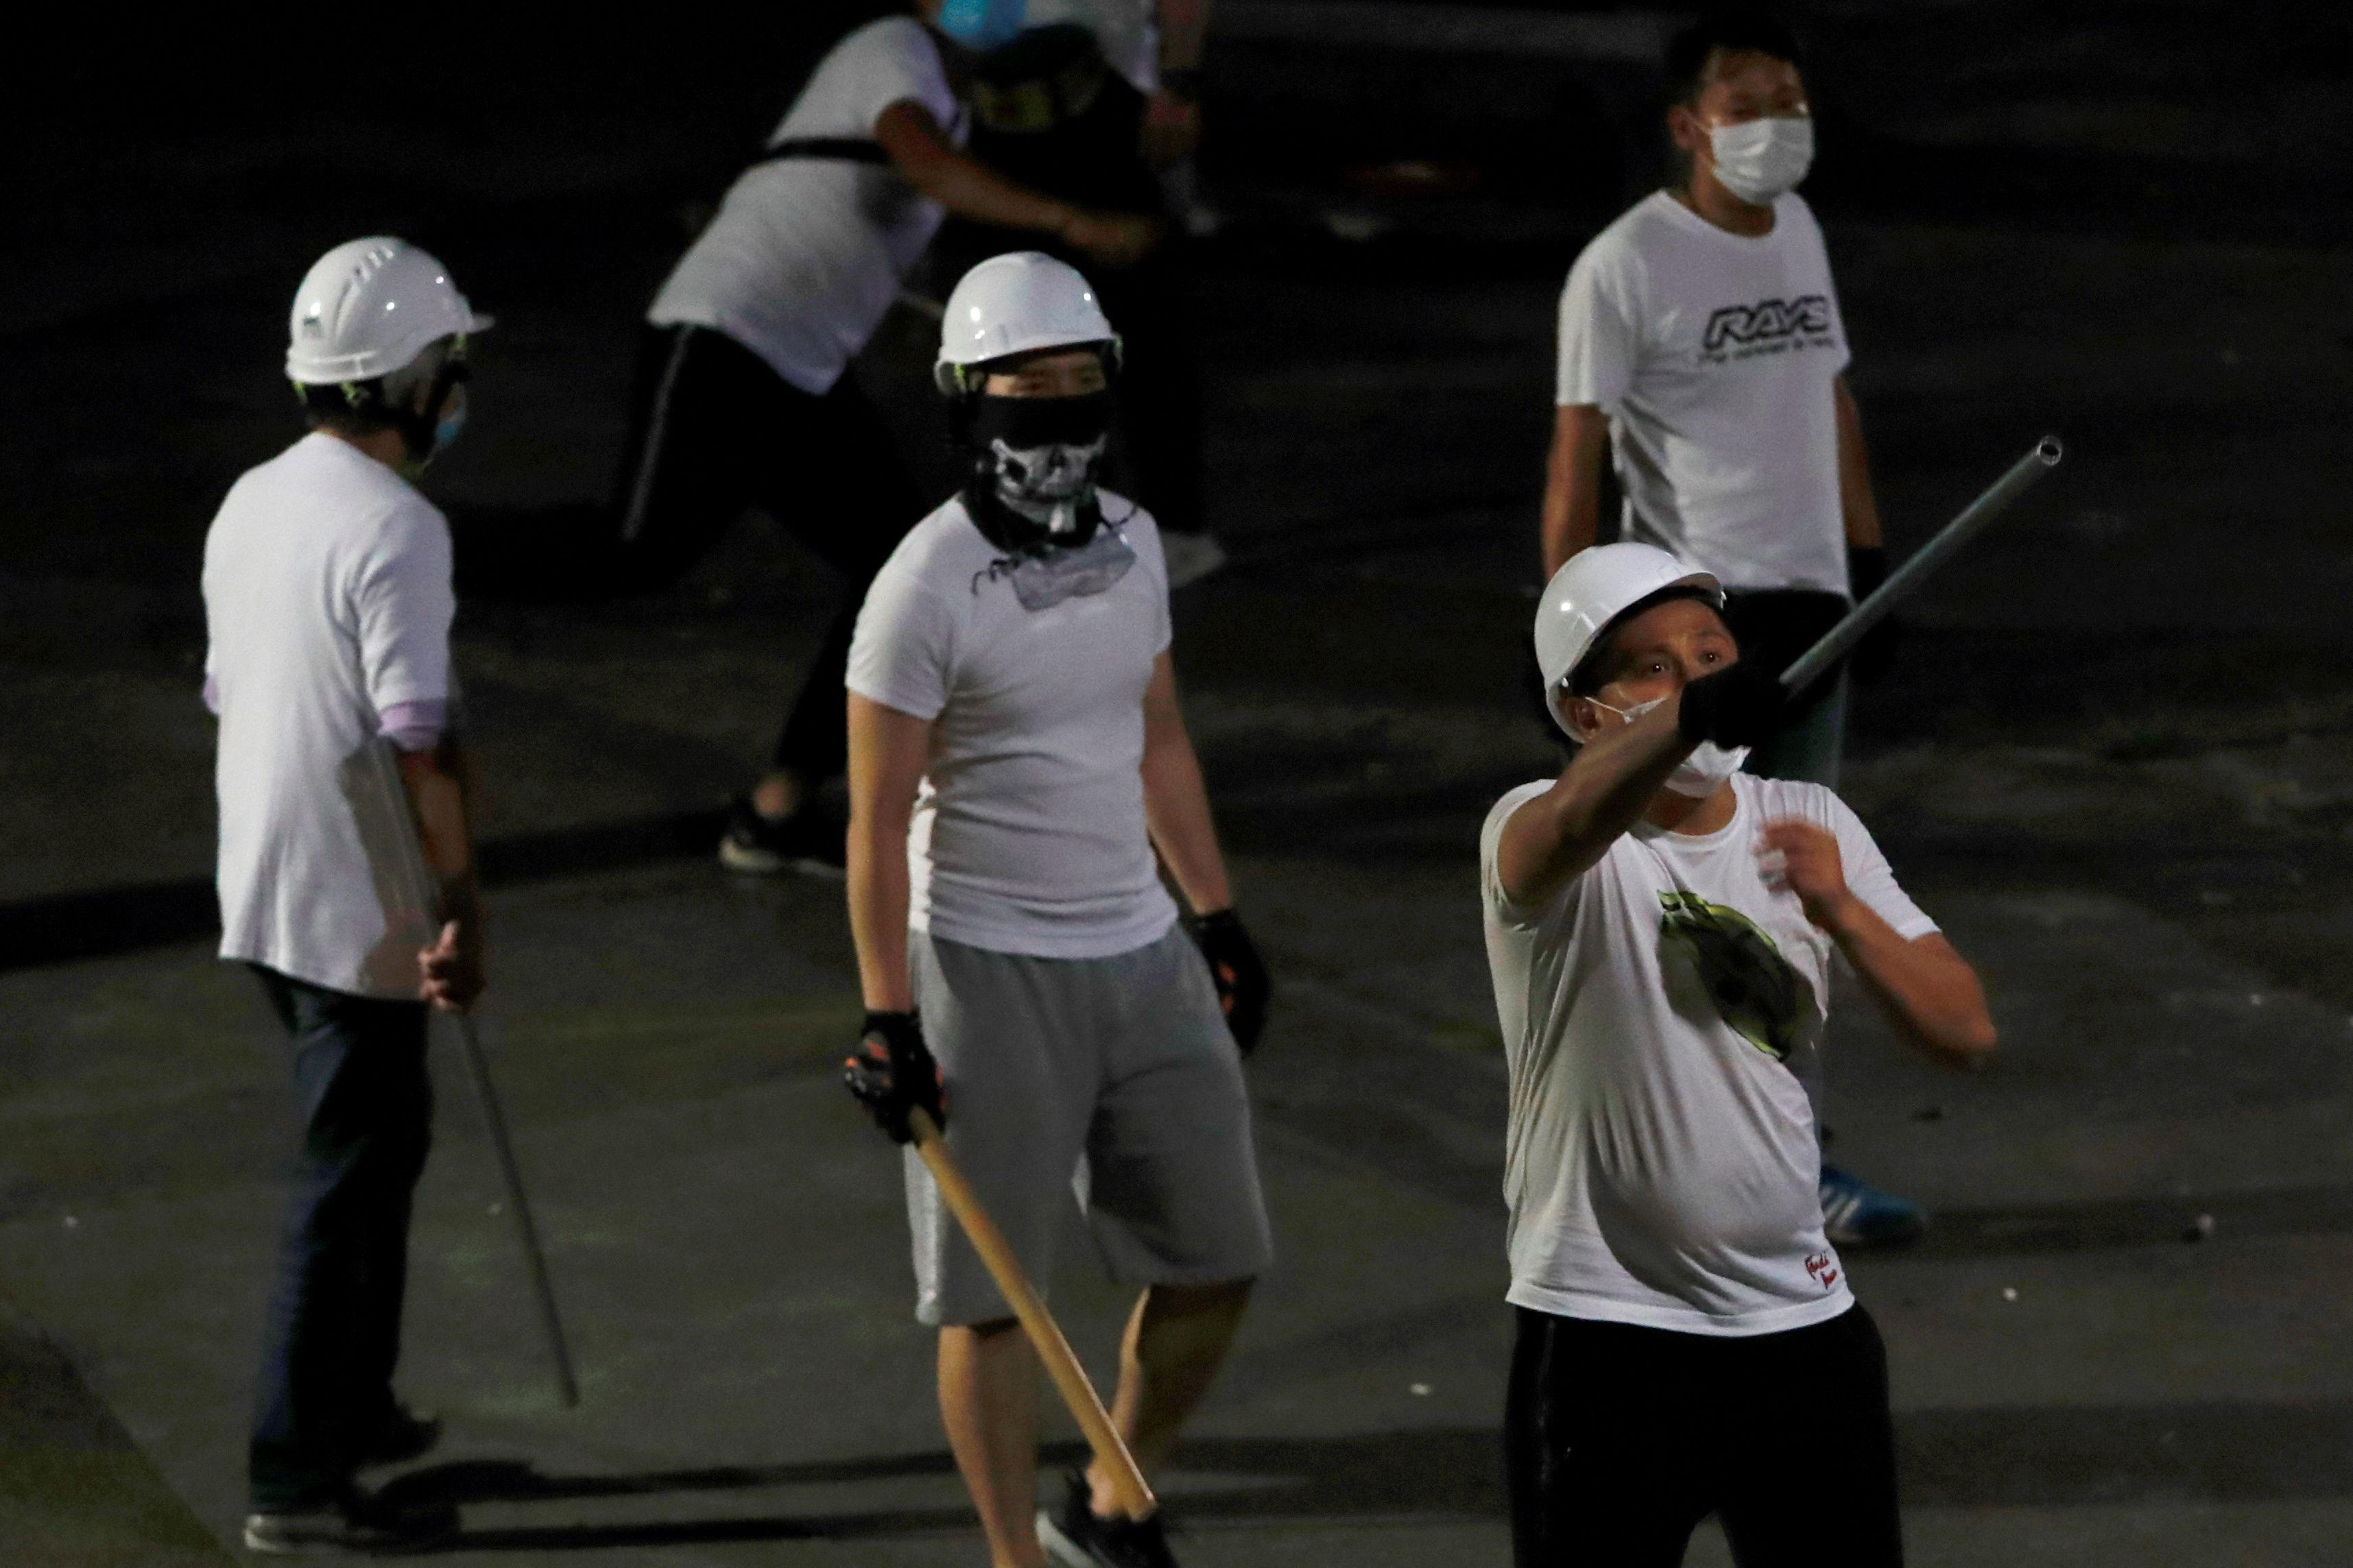 The Guardian view on violence in Hong Kong: an attack on the idea of democracy